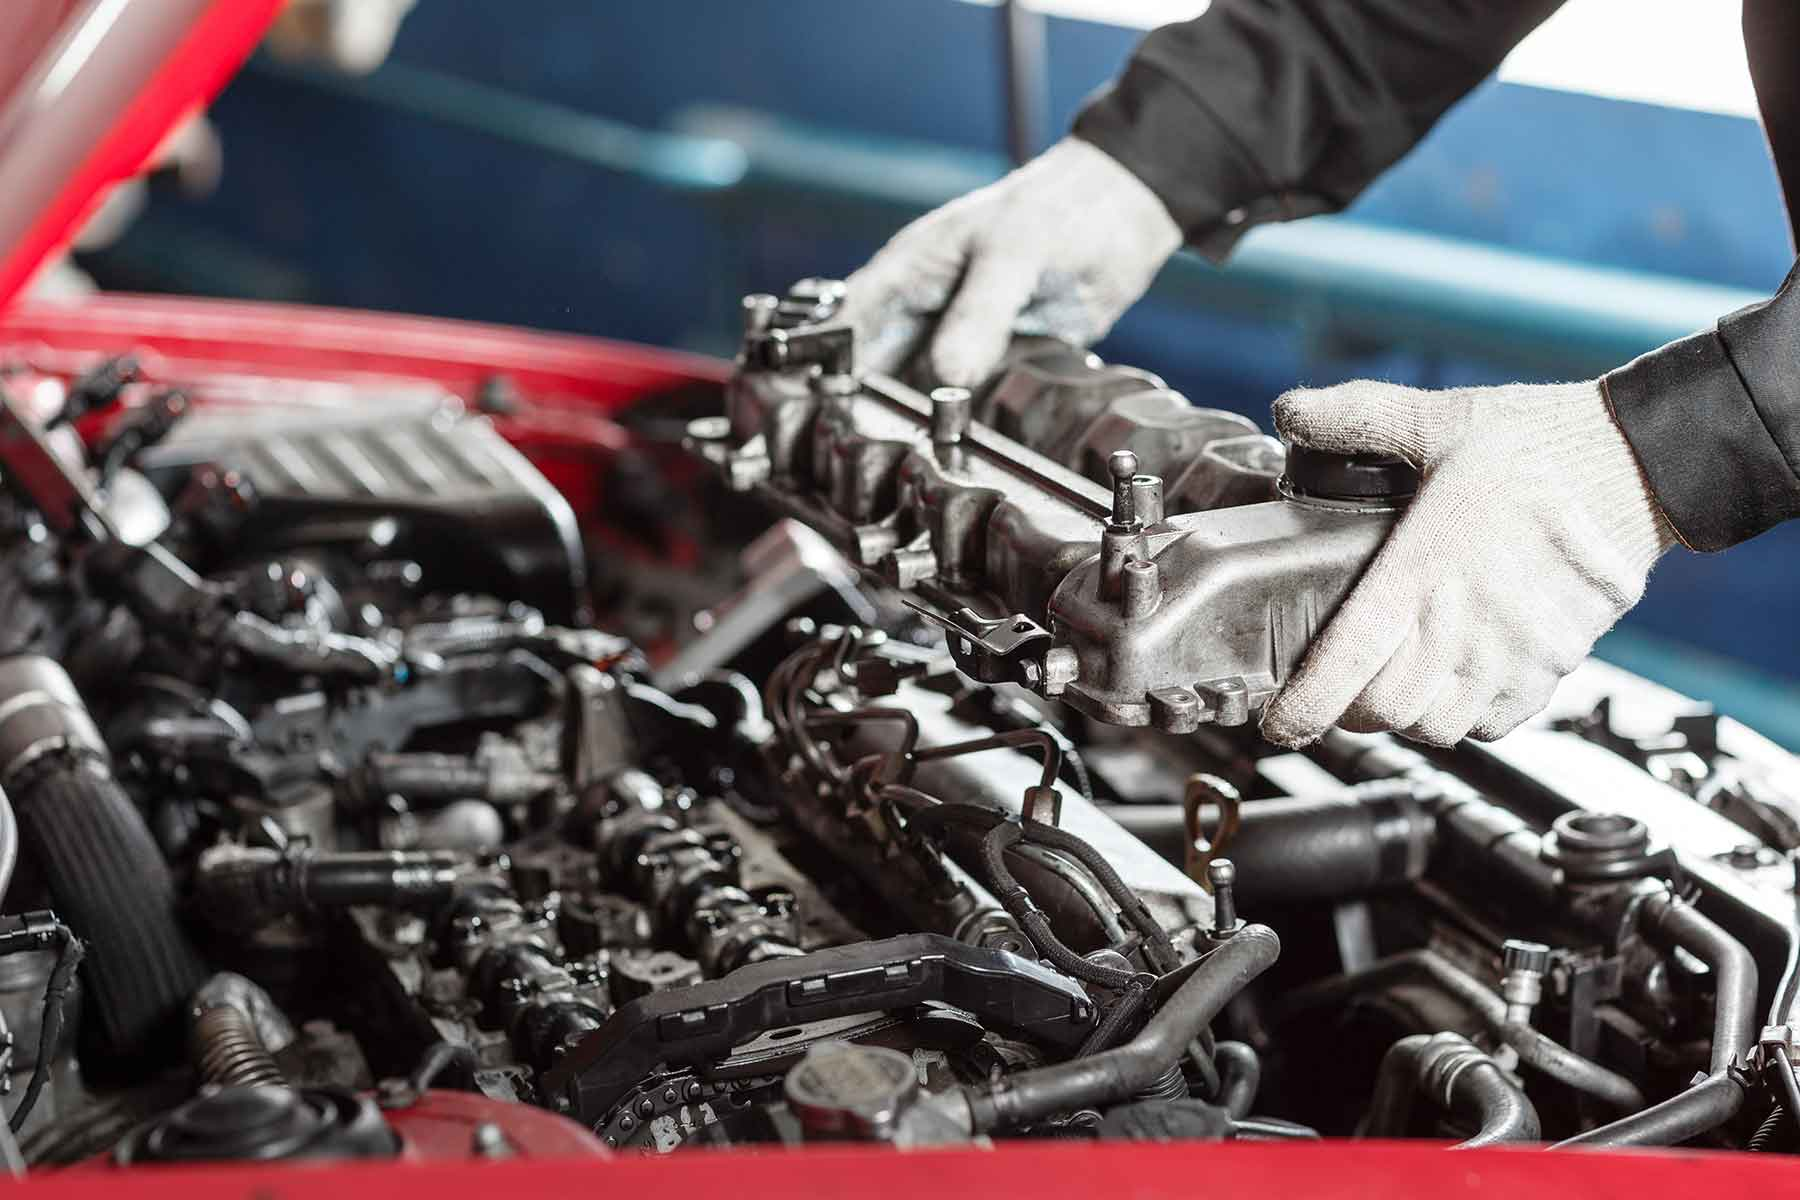 Engine work at hoffmaster's auto care